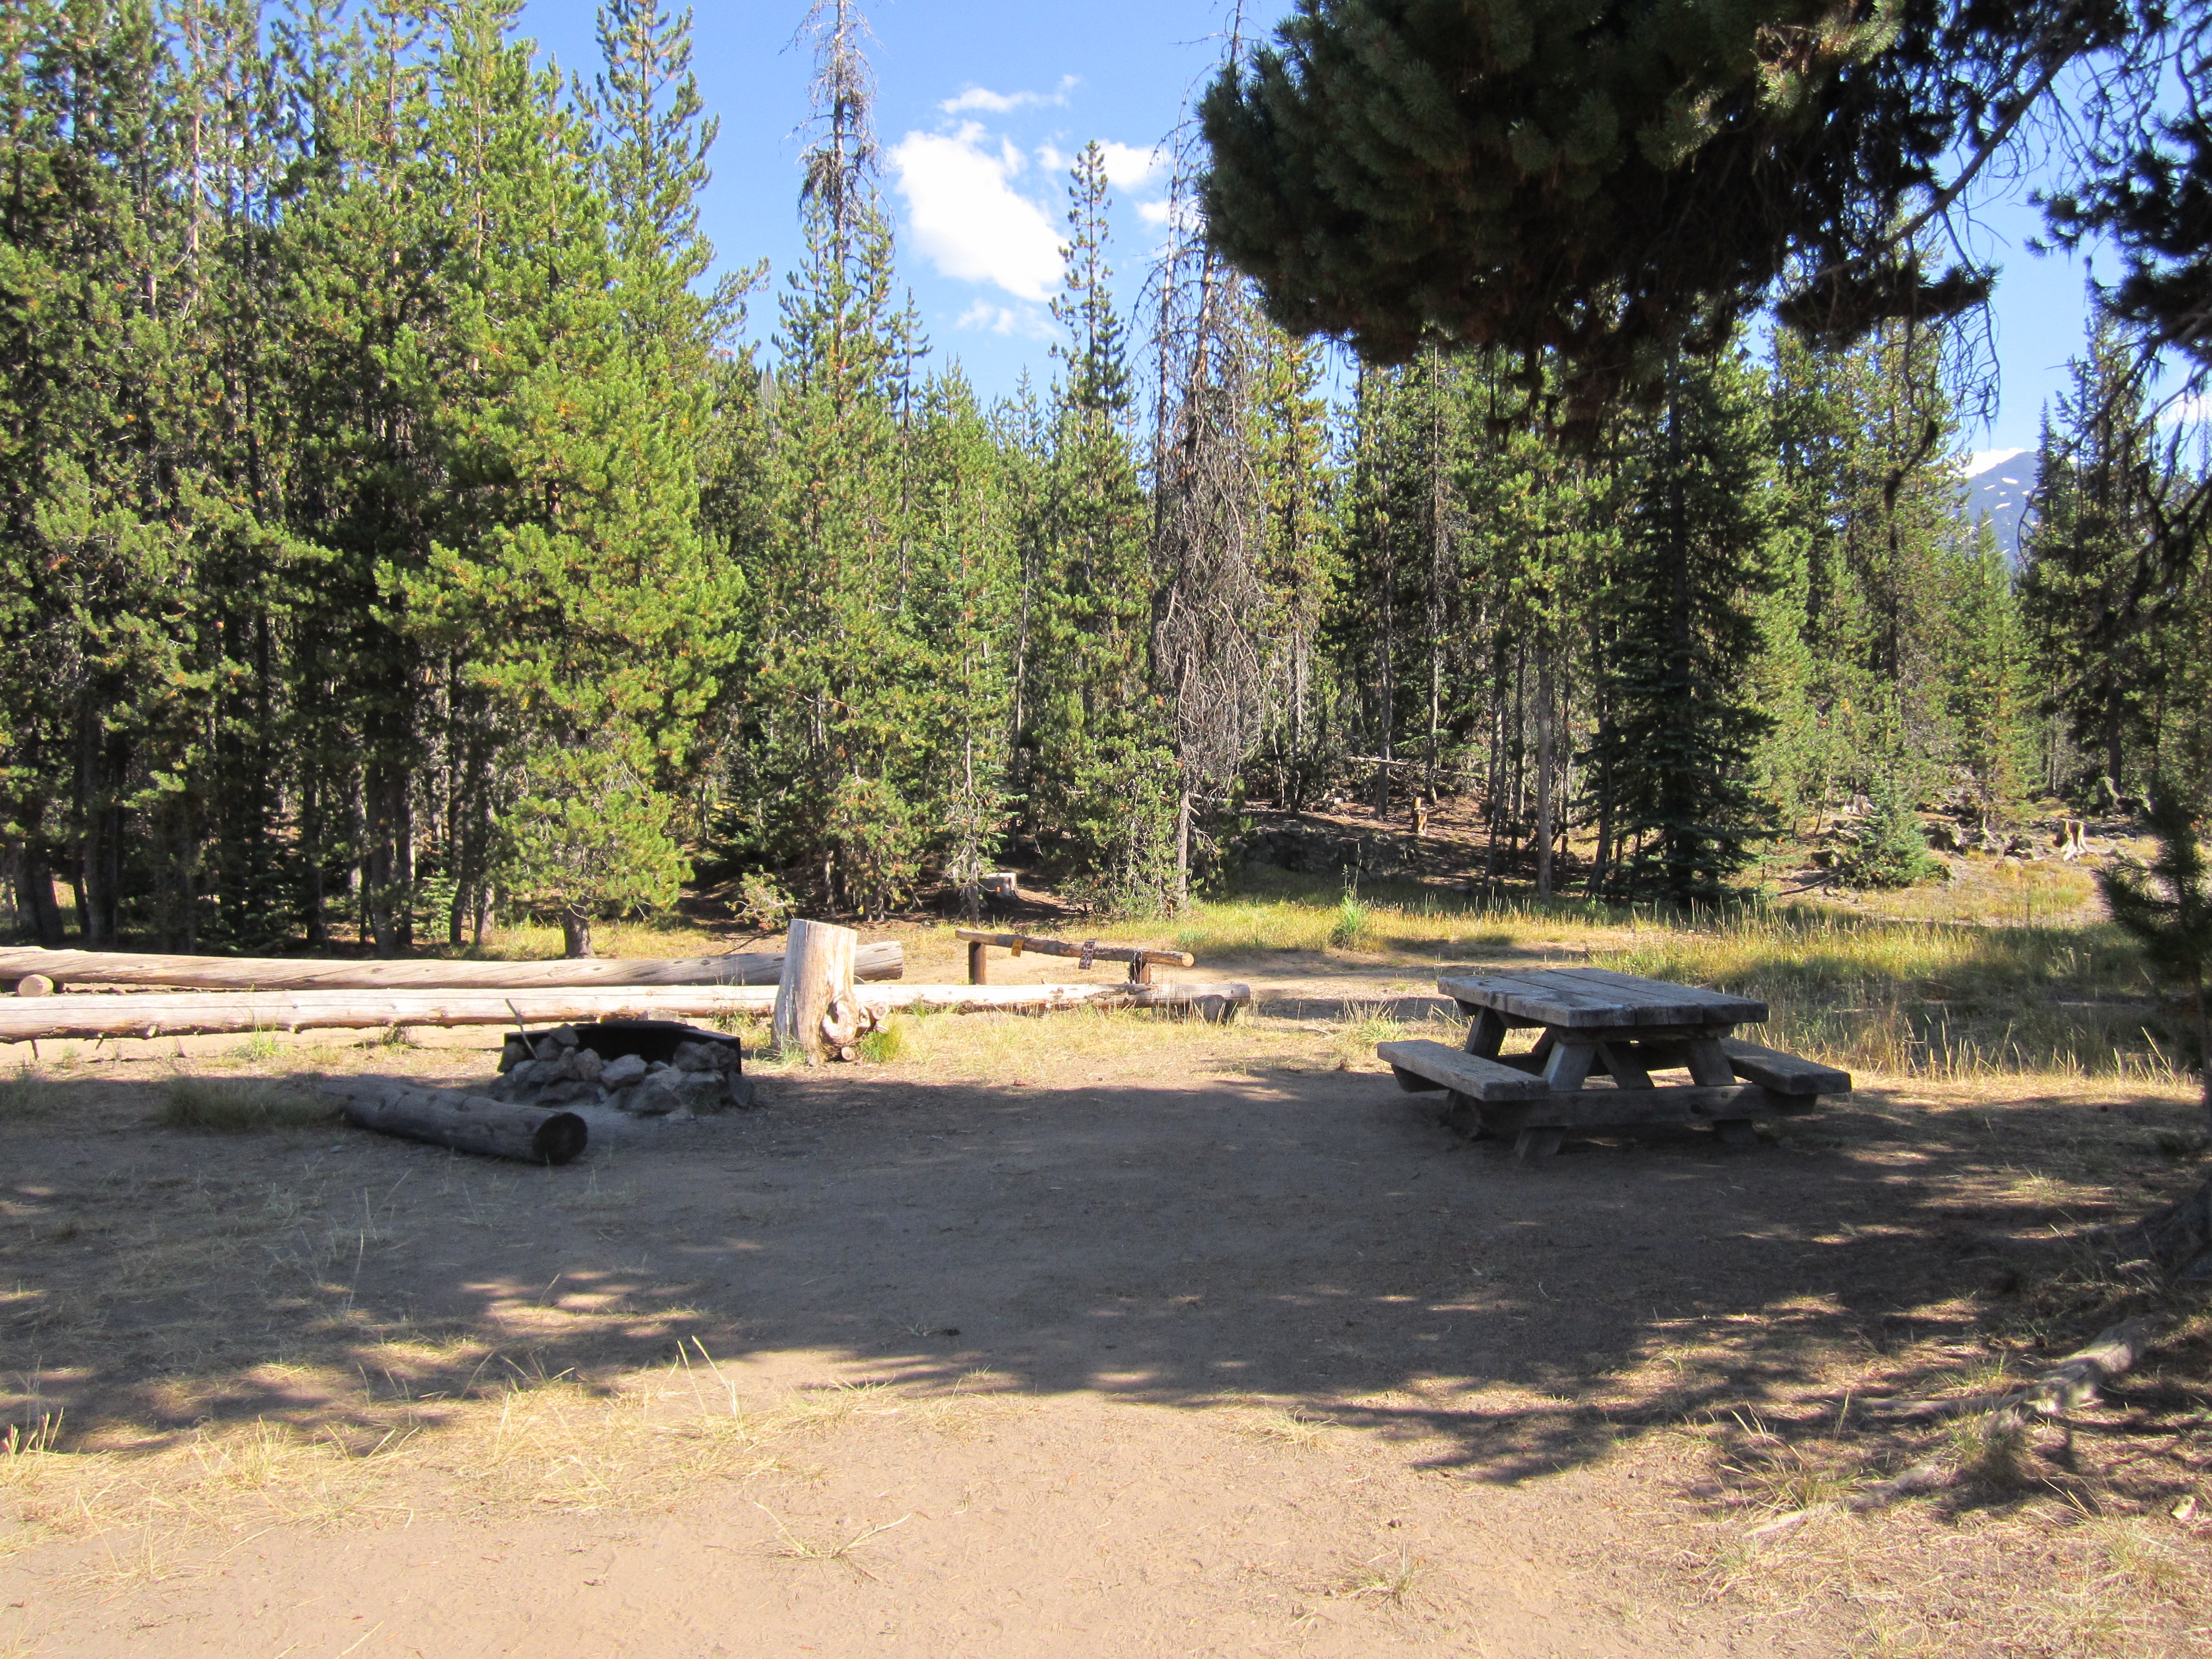 Deschutes National Forest - Soda Creek Campground